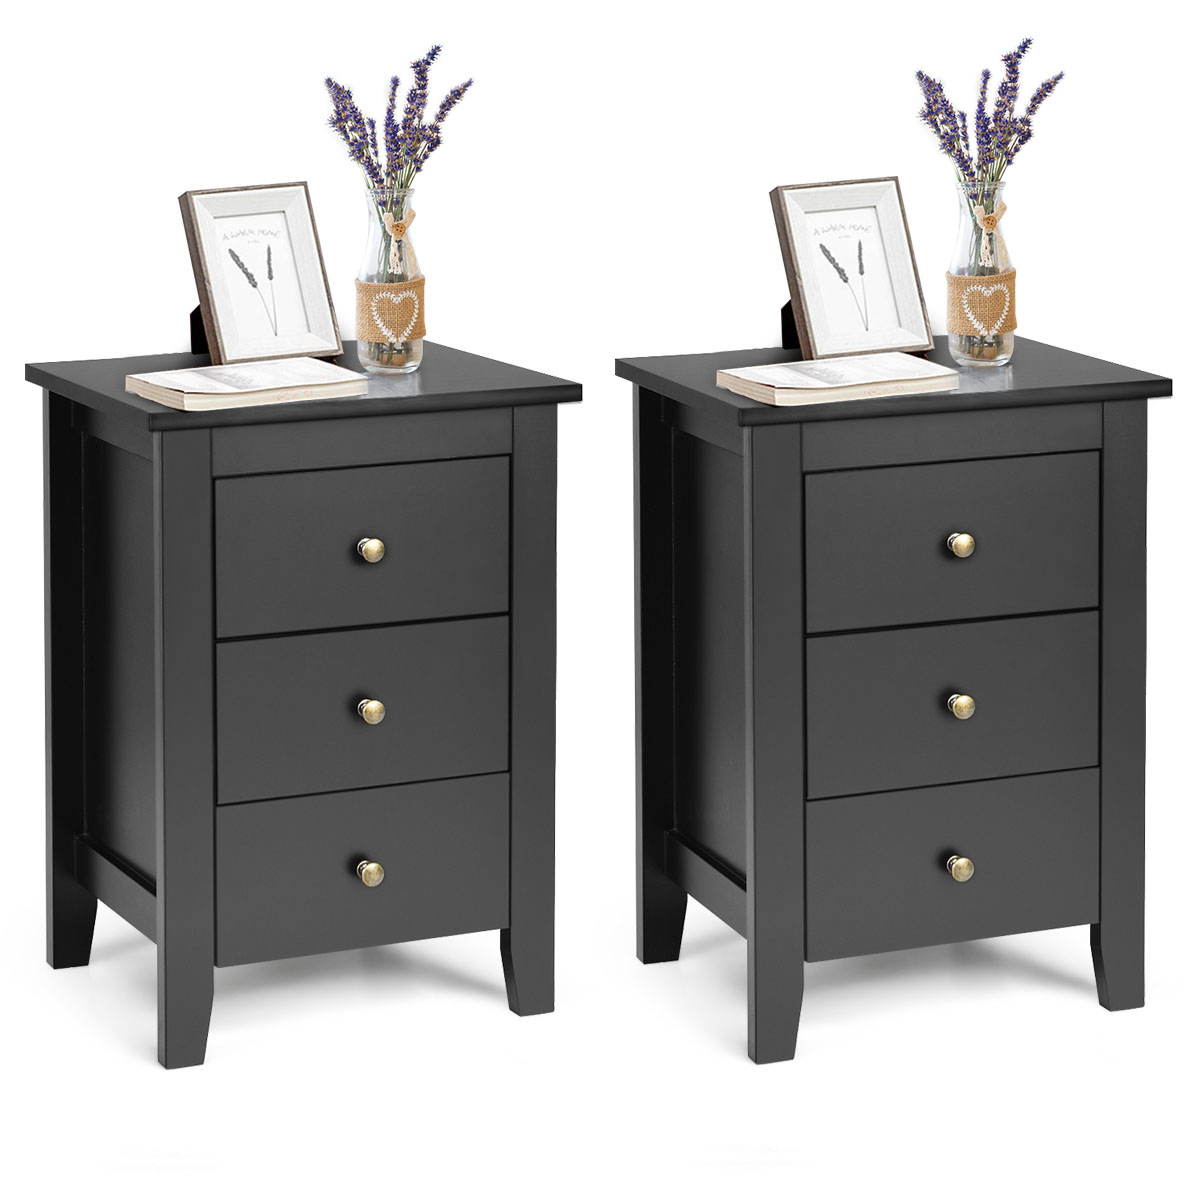 Costway Set Of 2 Nightstand End Beside Sofa Table W/ 3 Drawers Bedroom Furniture Black